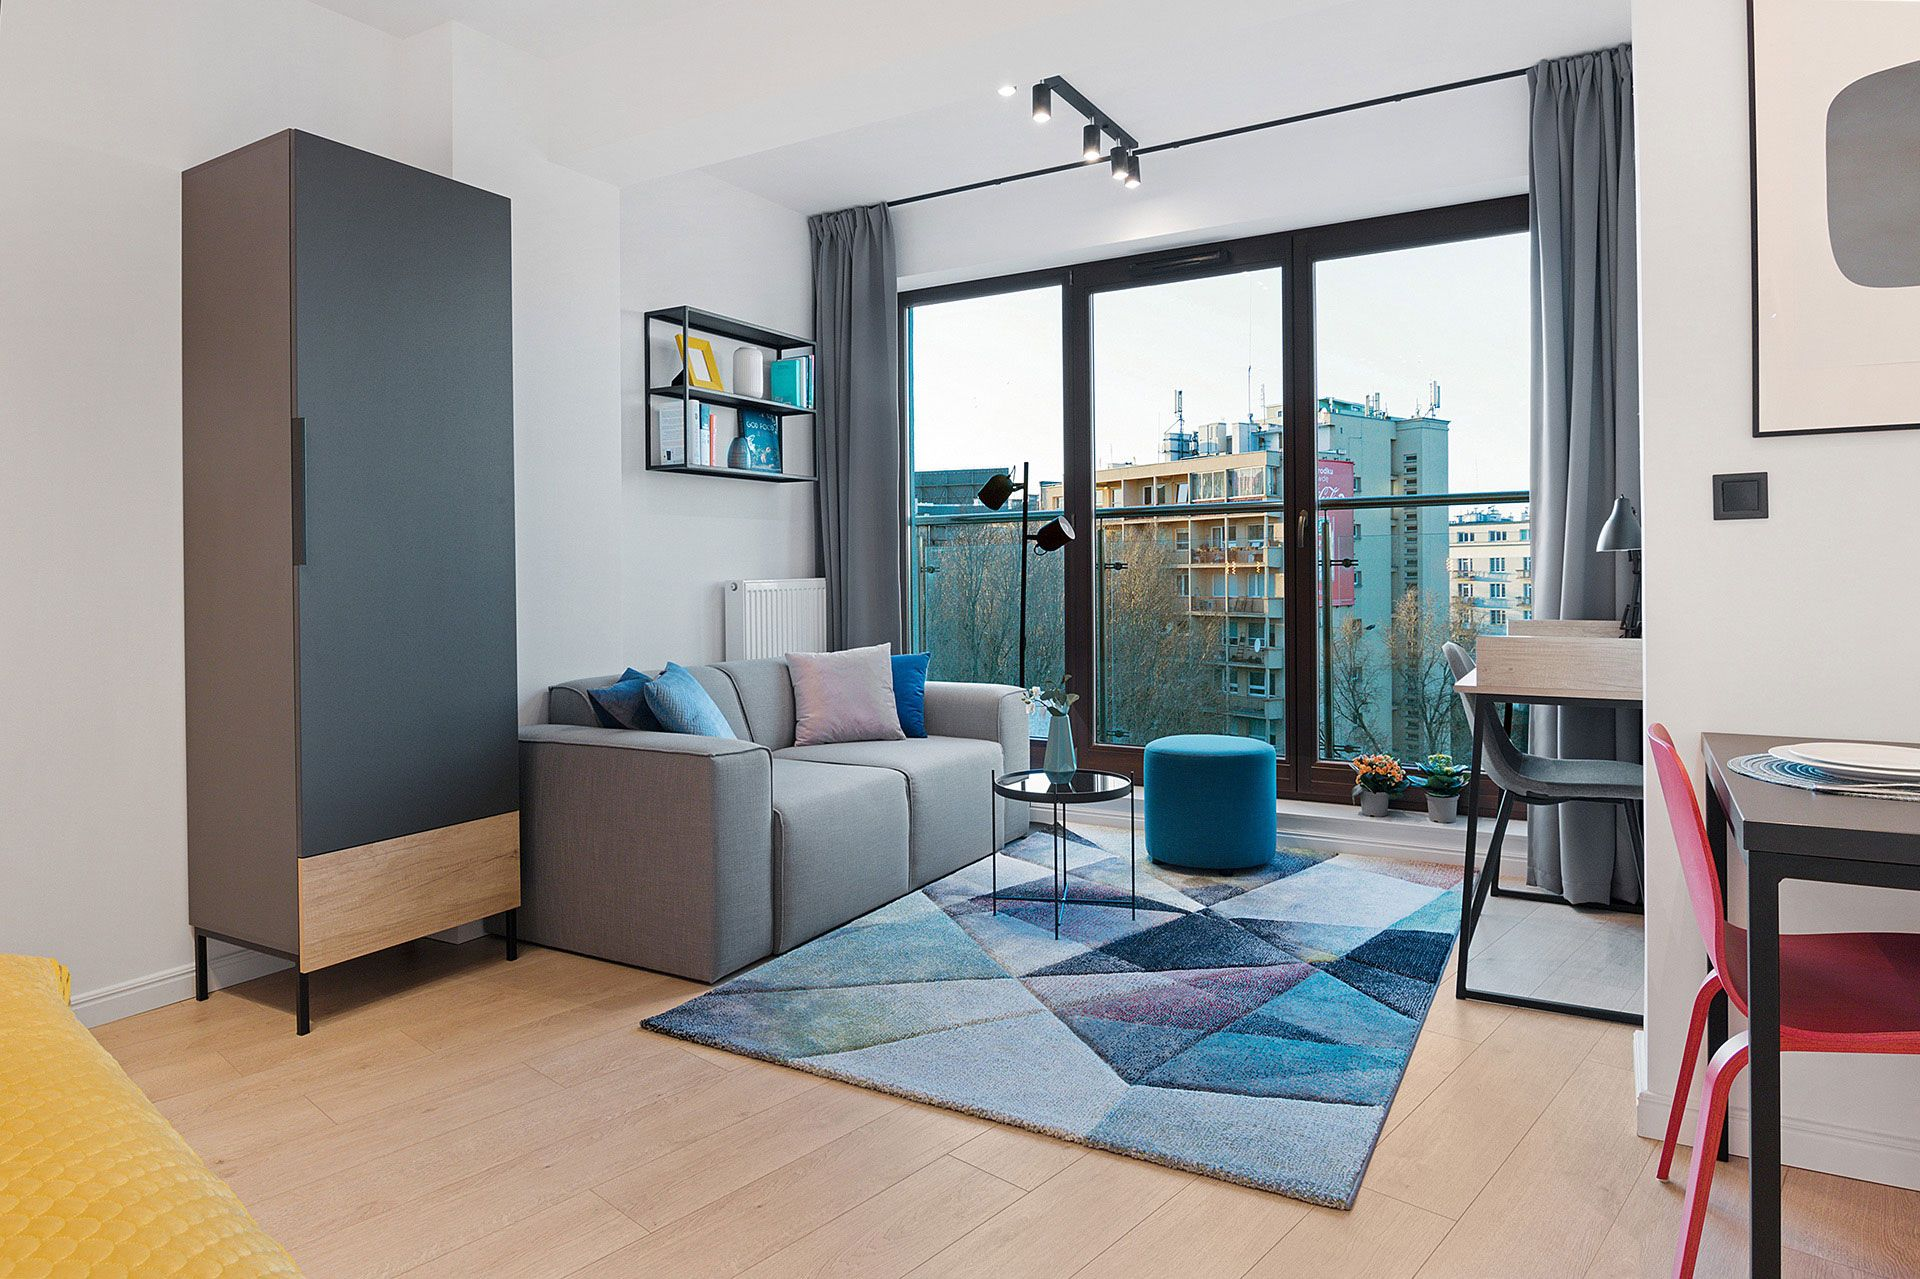 Studio - Medium apartment to rent in Warsaw UPR-A-077-1